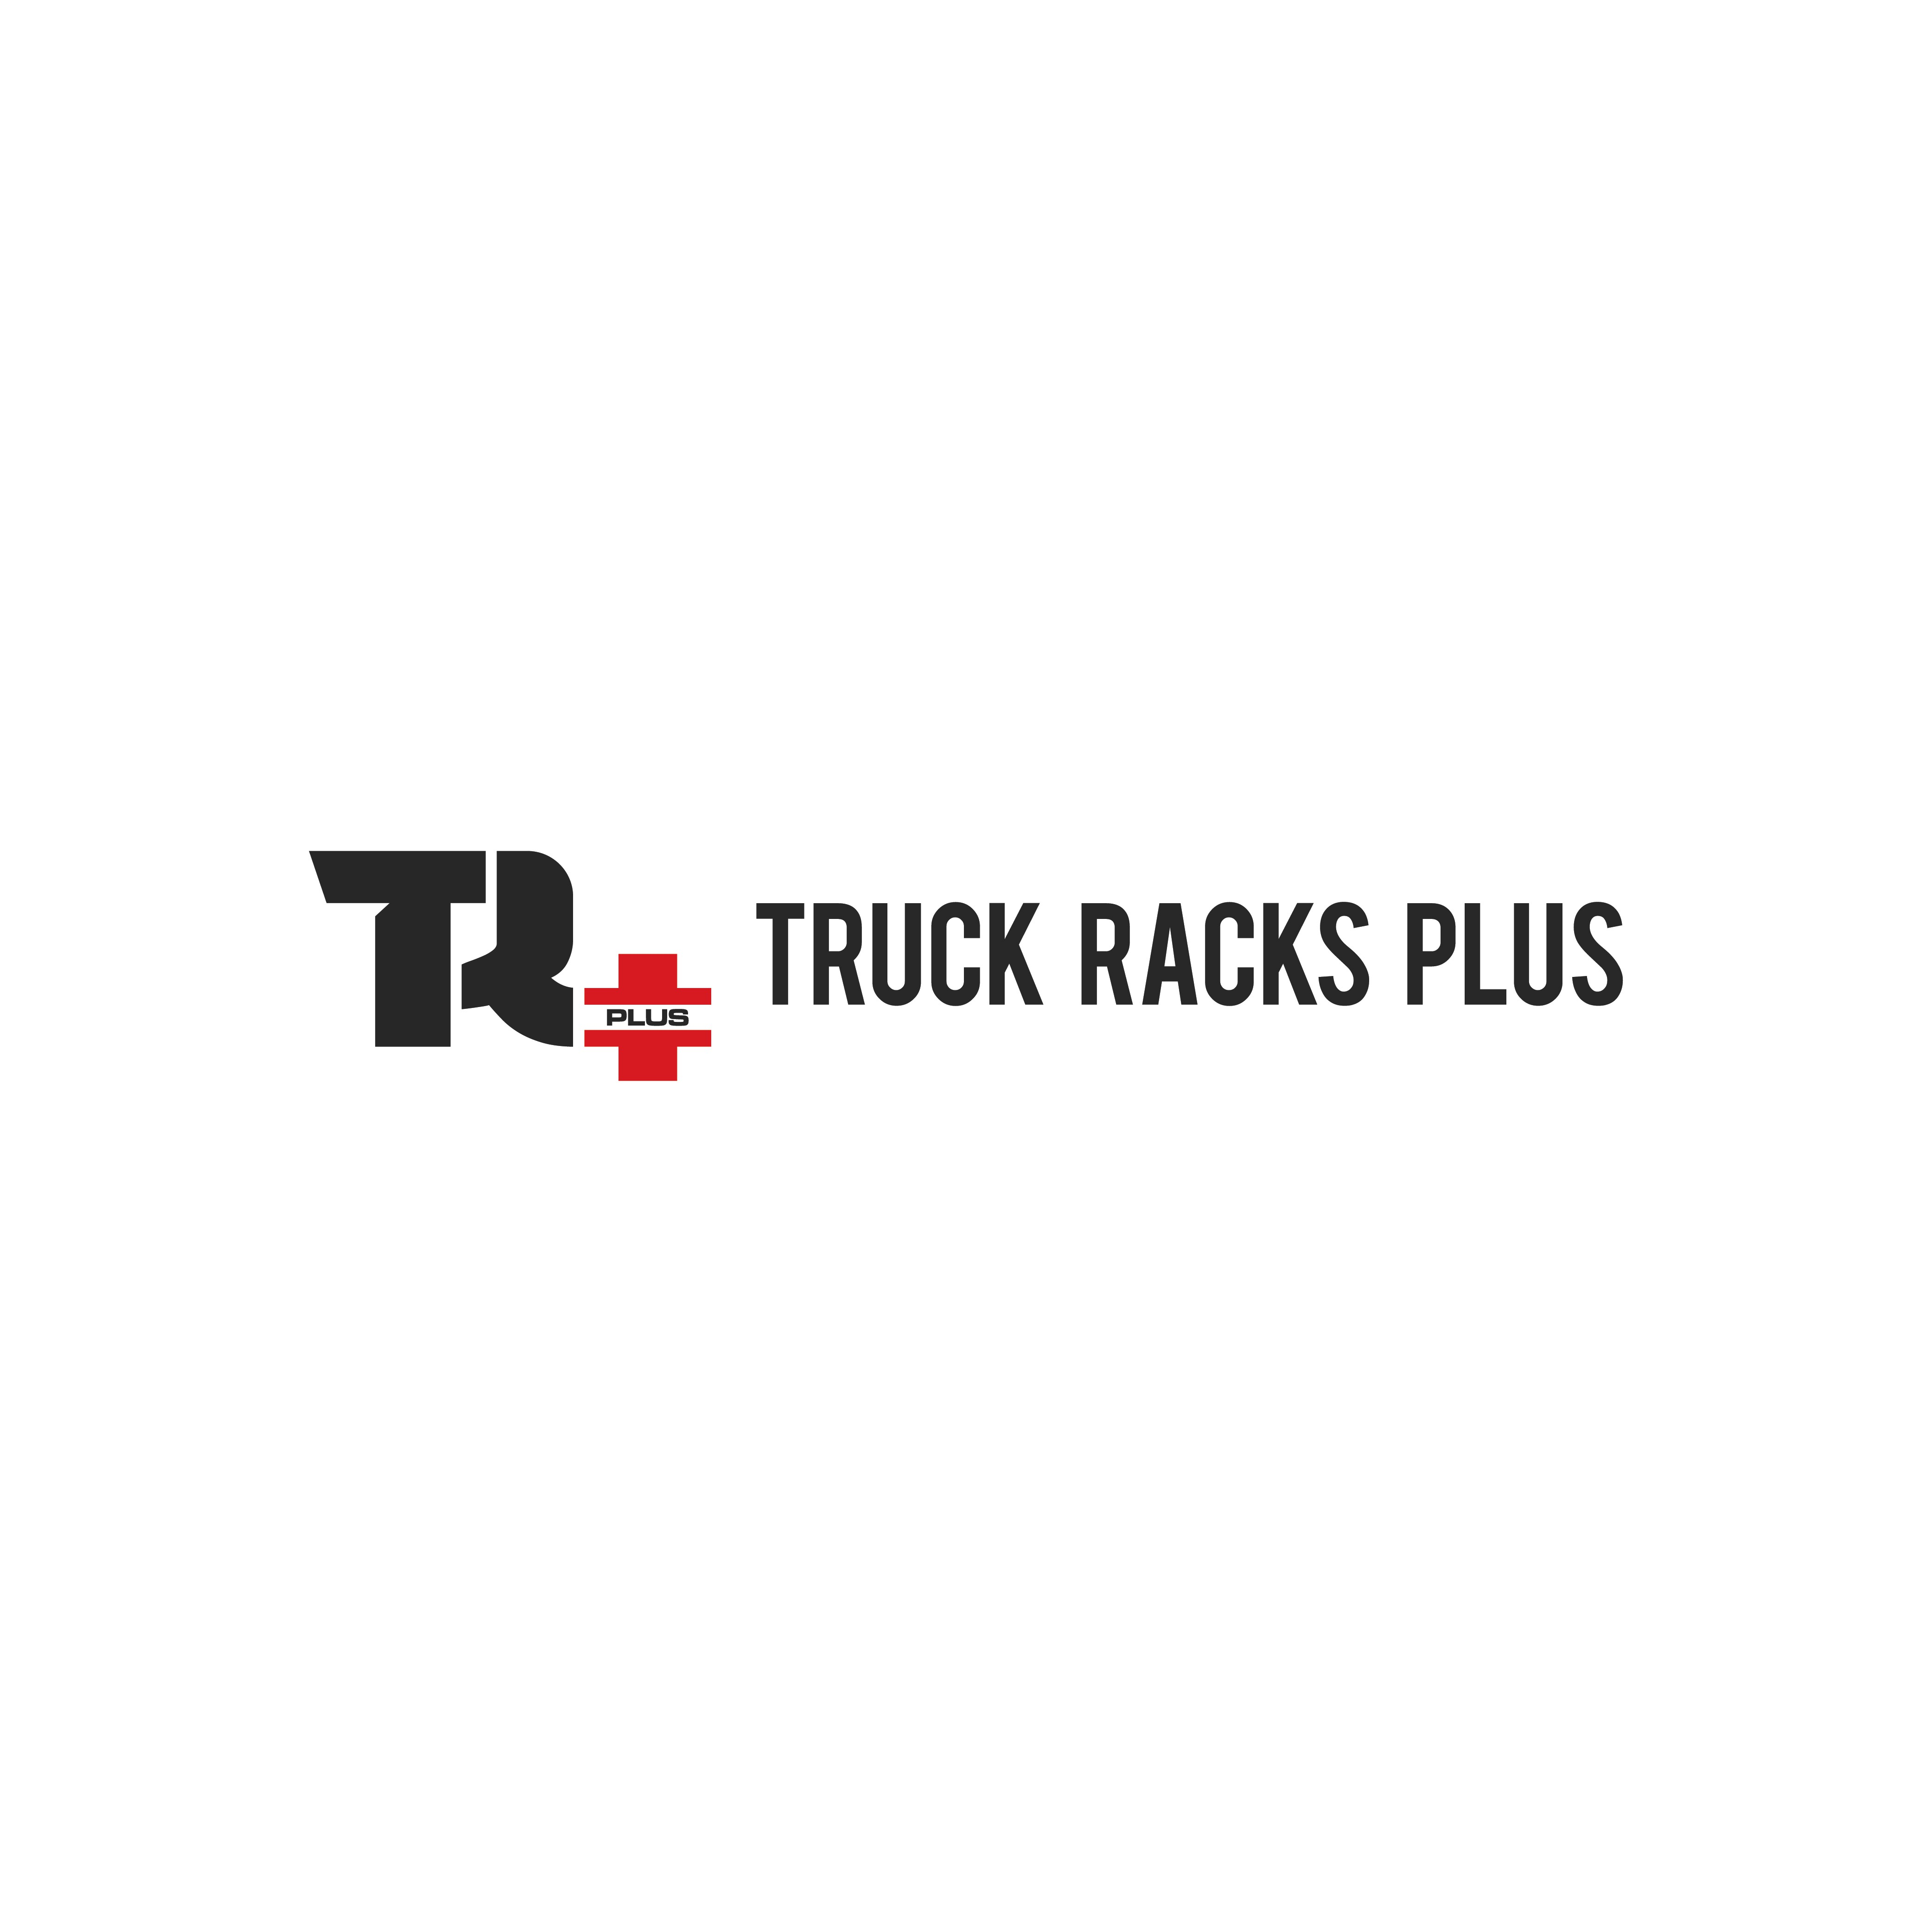 Updated Logo Needed for a Truck and Van Equipment Distributor